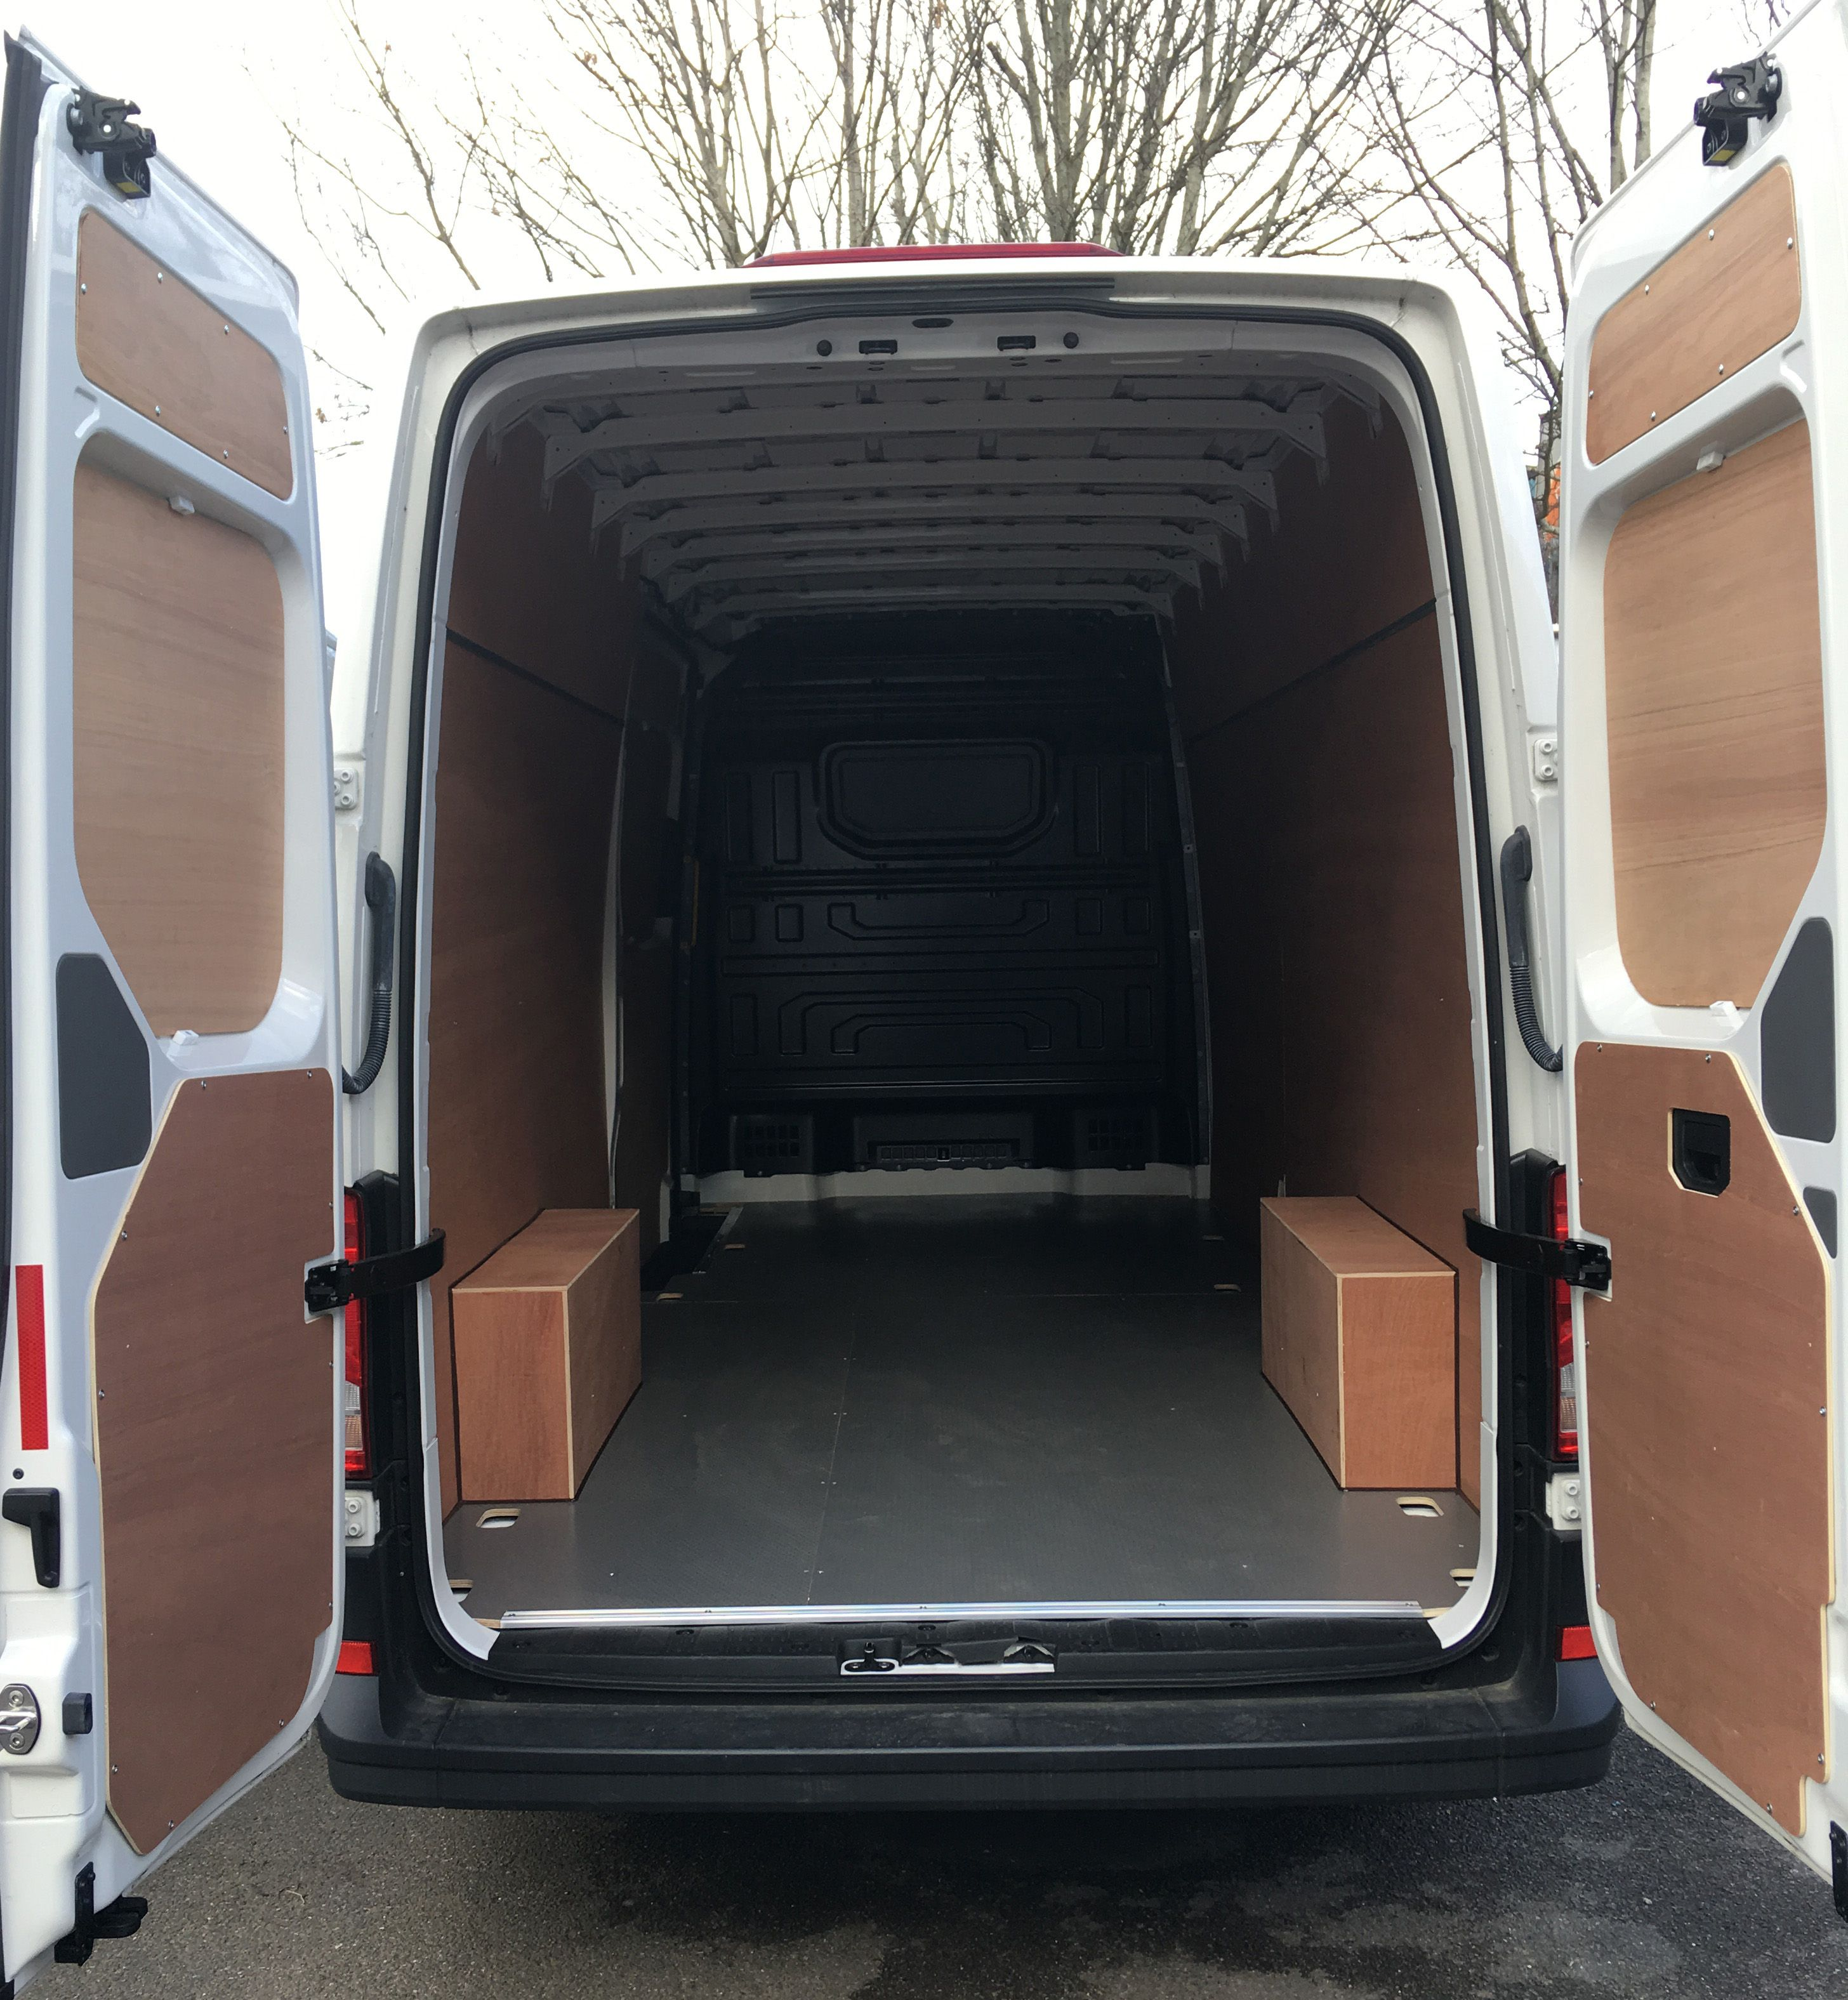 Vw Crafter Fitted With Ply Lining Kit And Meshdeck Flooring  # Muebles Sortimo